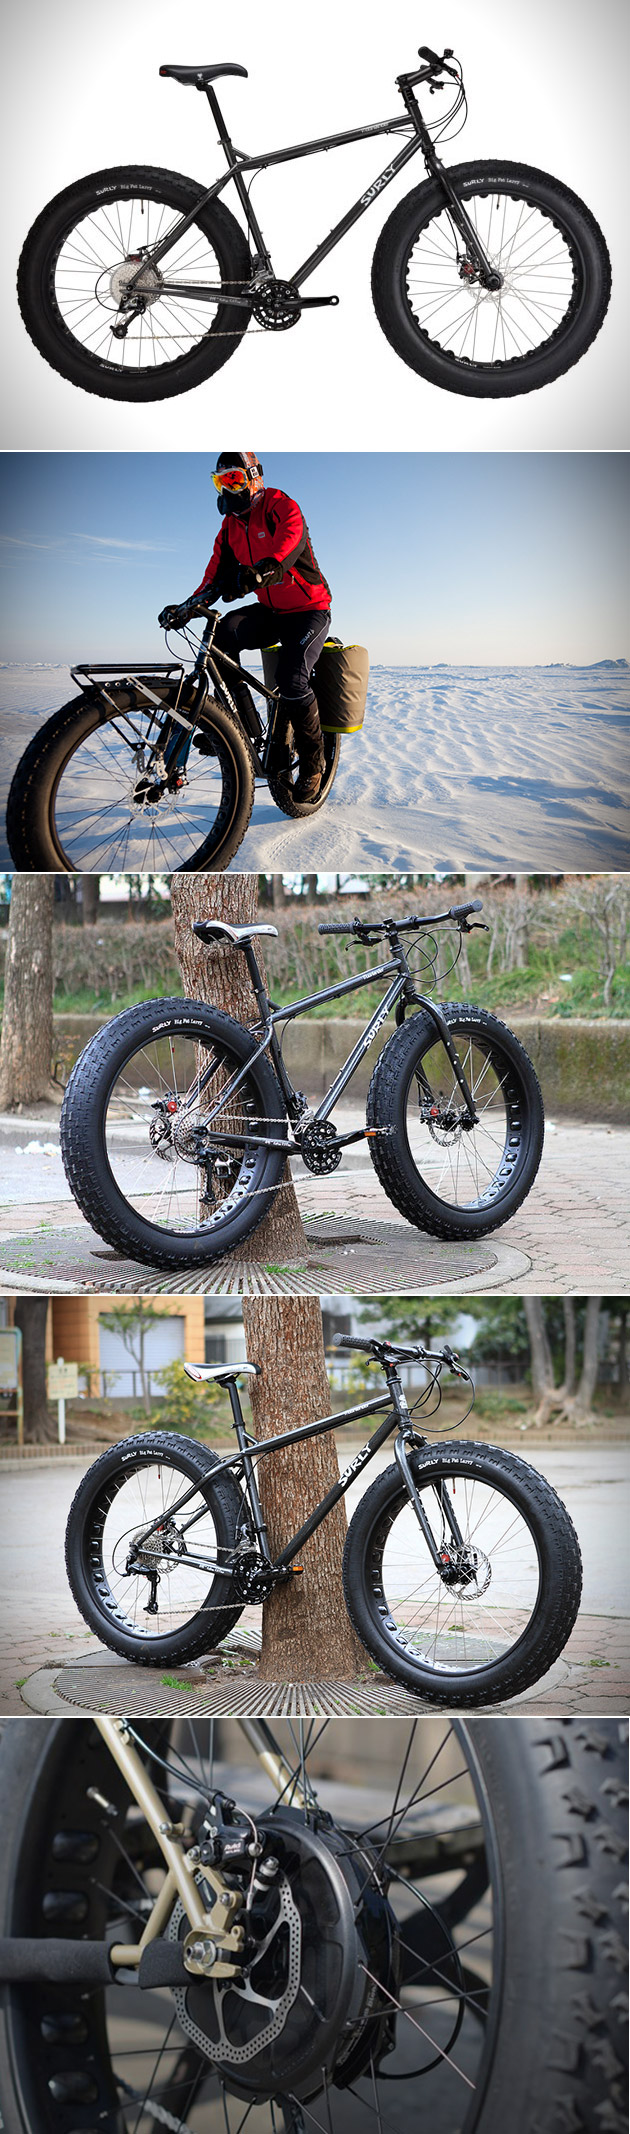 surly-moonlander-fat-bike